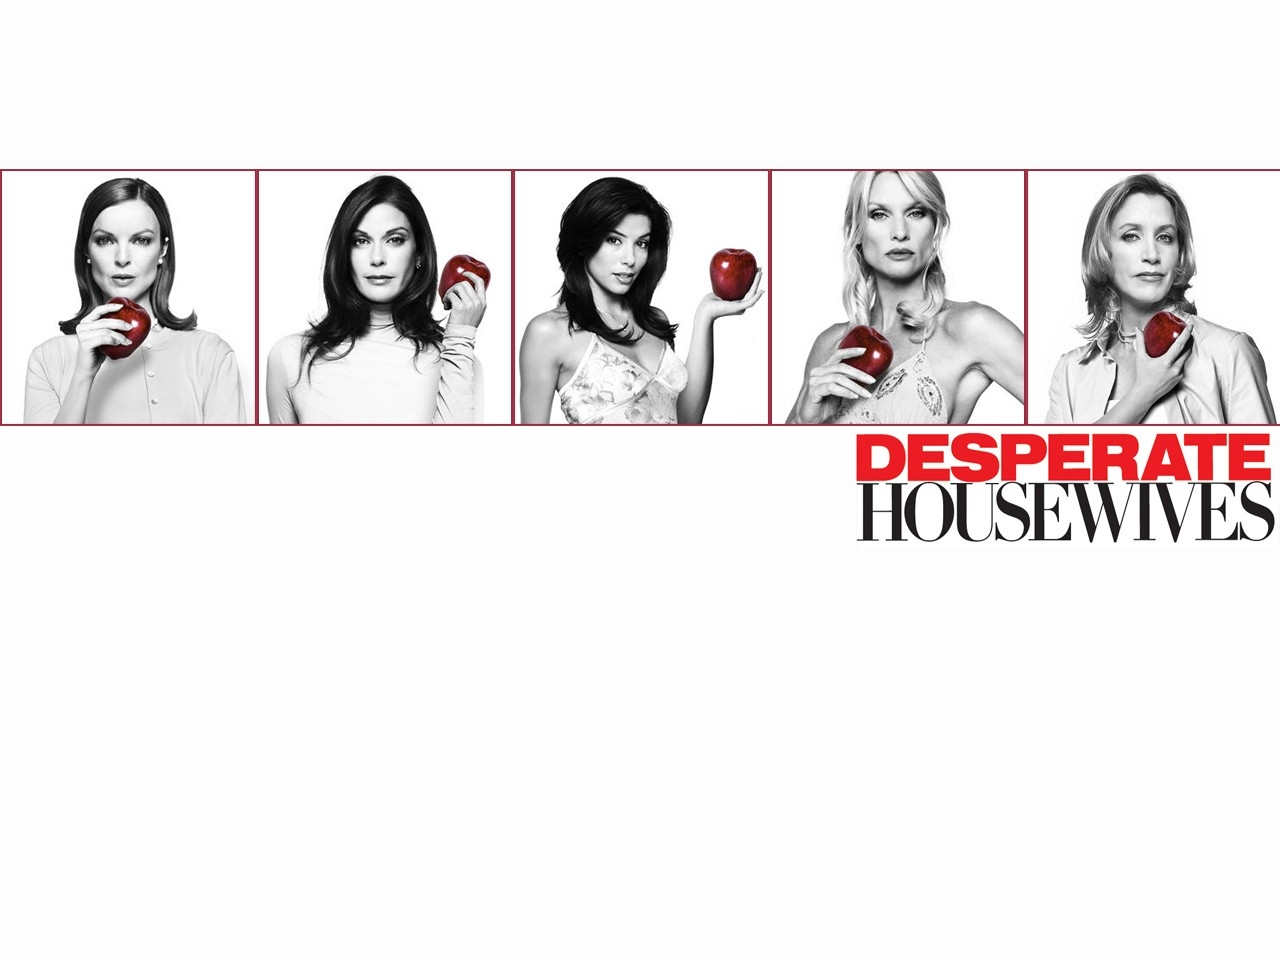 Wallpaper della serie Desperate Housewives con le protagoniste